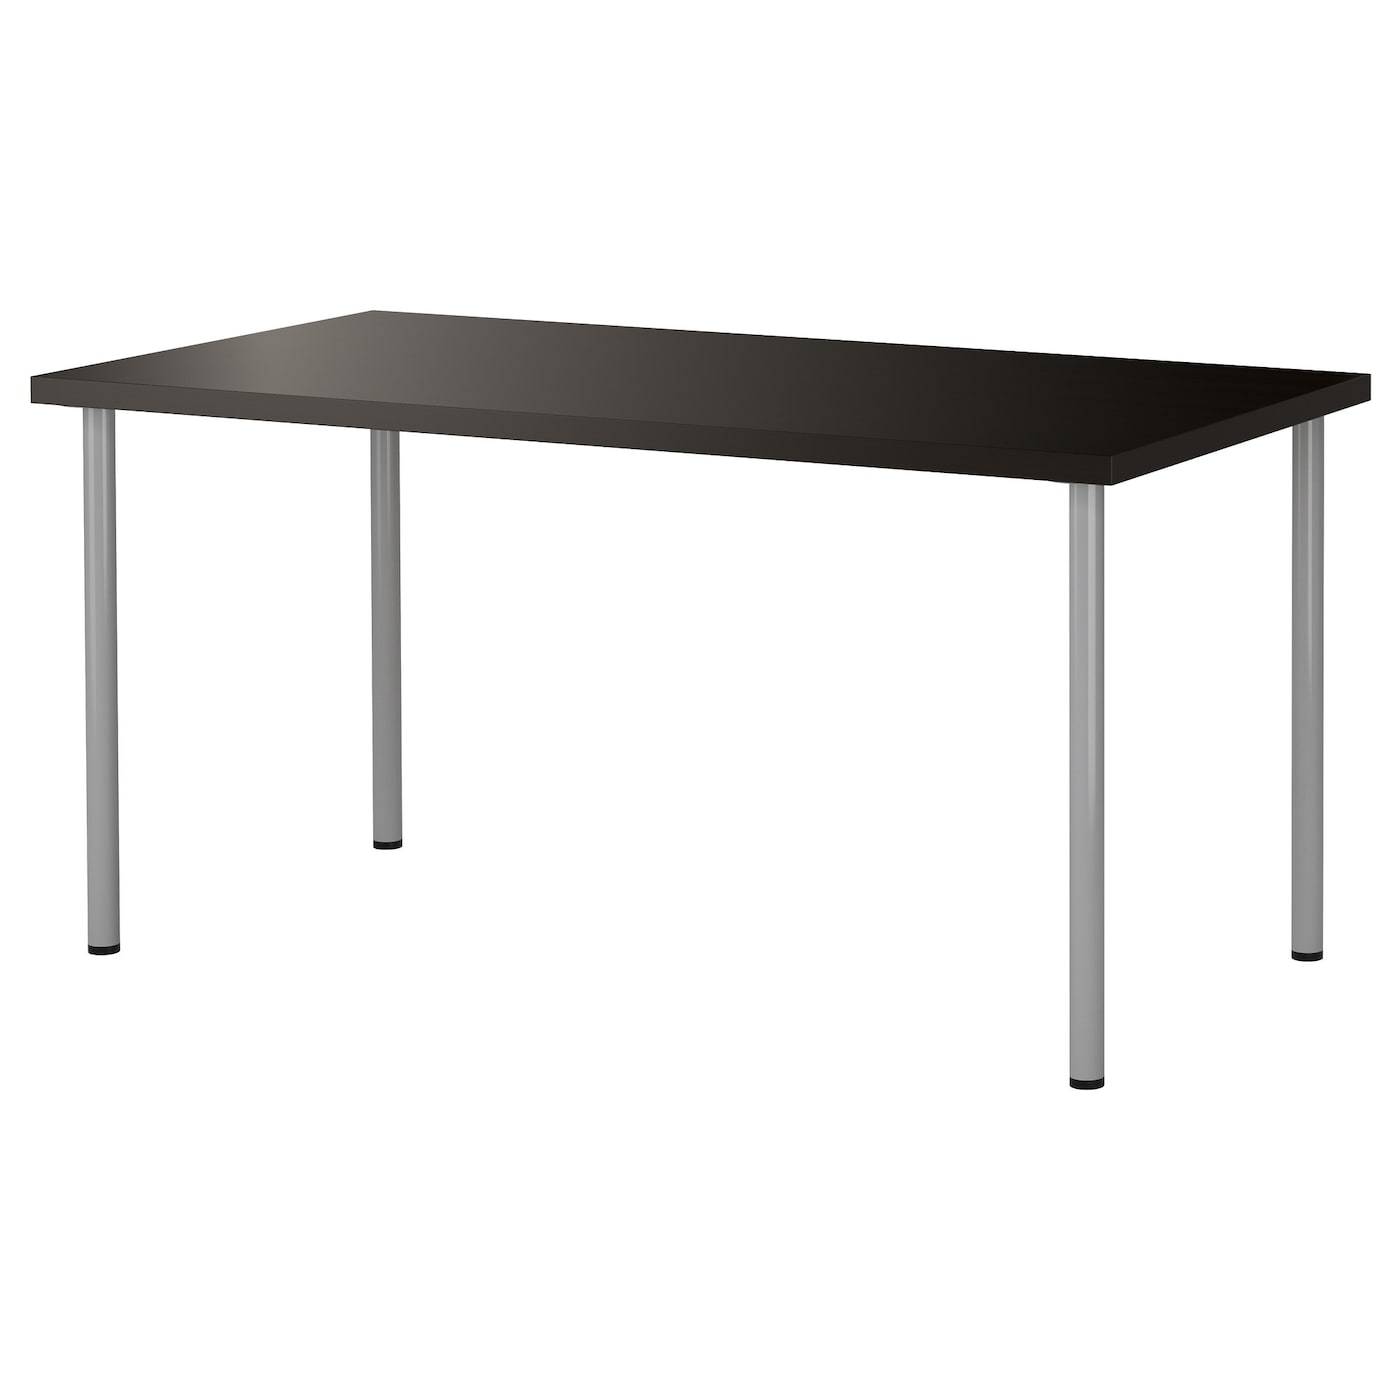 adils linnmon table black brown silver colour 150x75 cm ikea. Black Bedroom Furniture Sets. Home Design Ideas